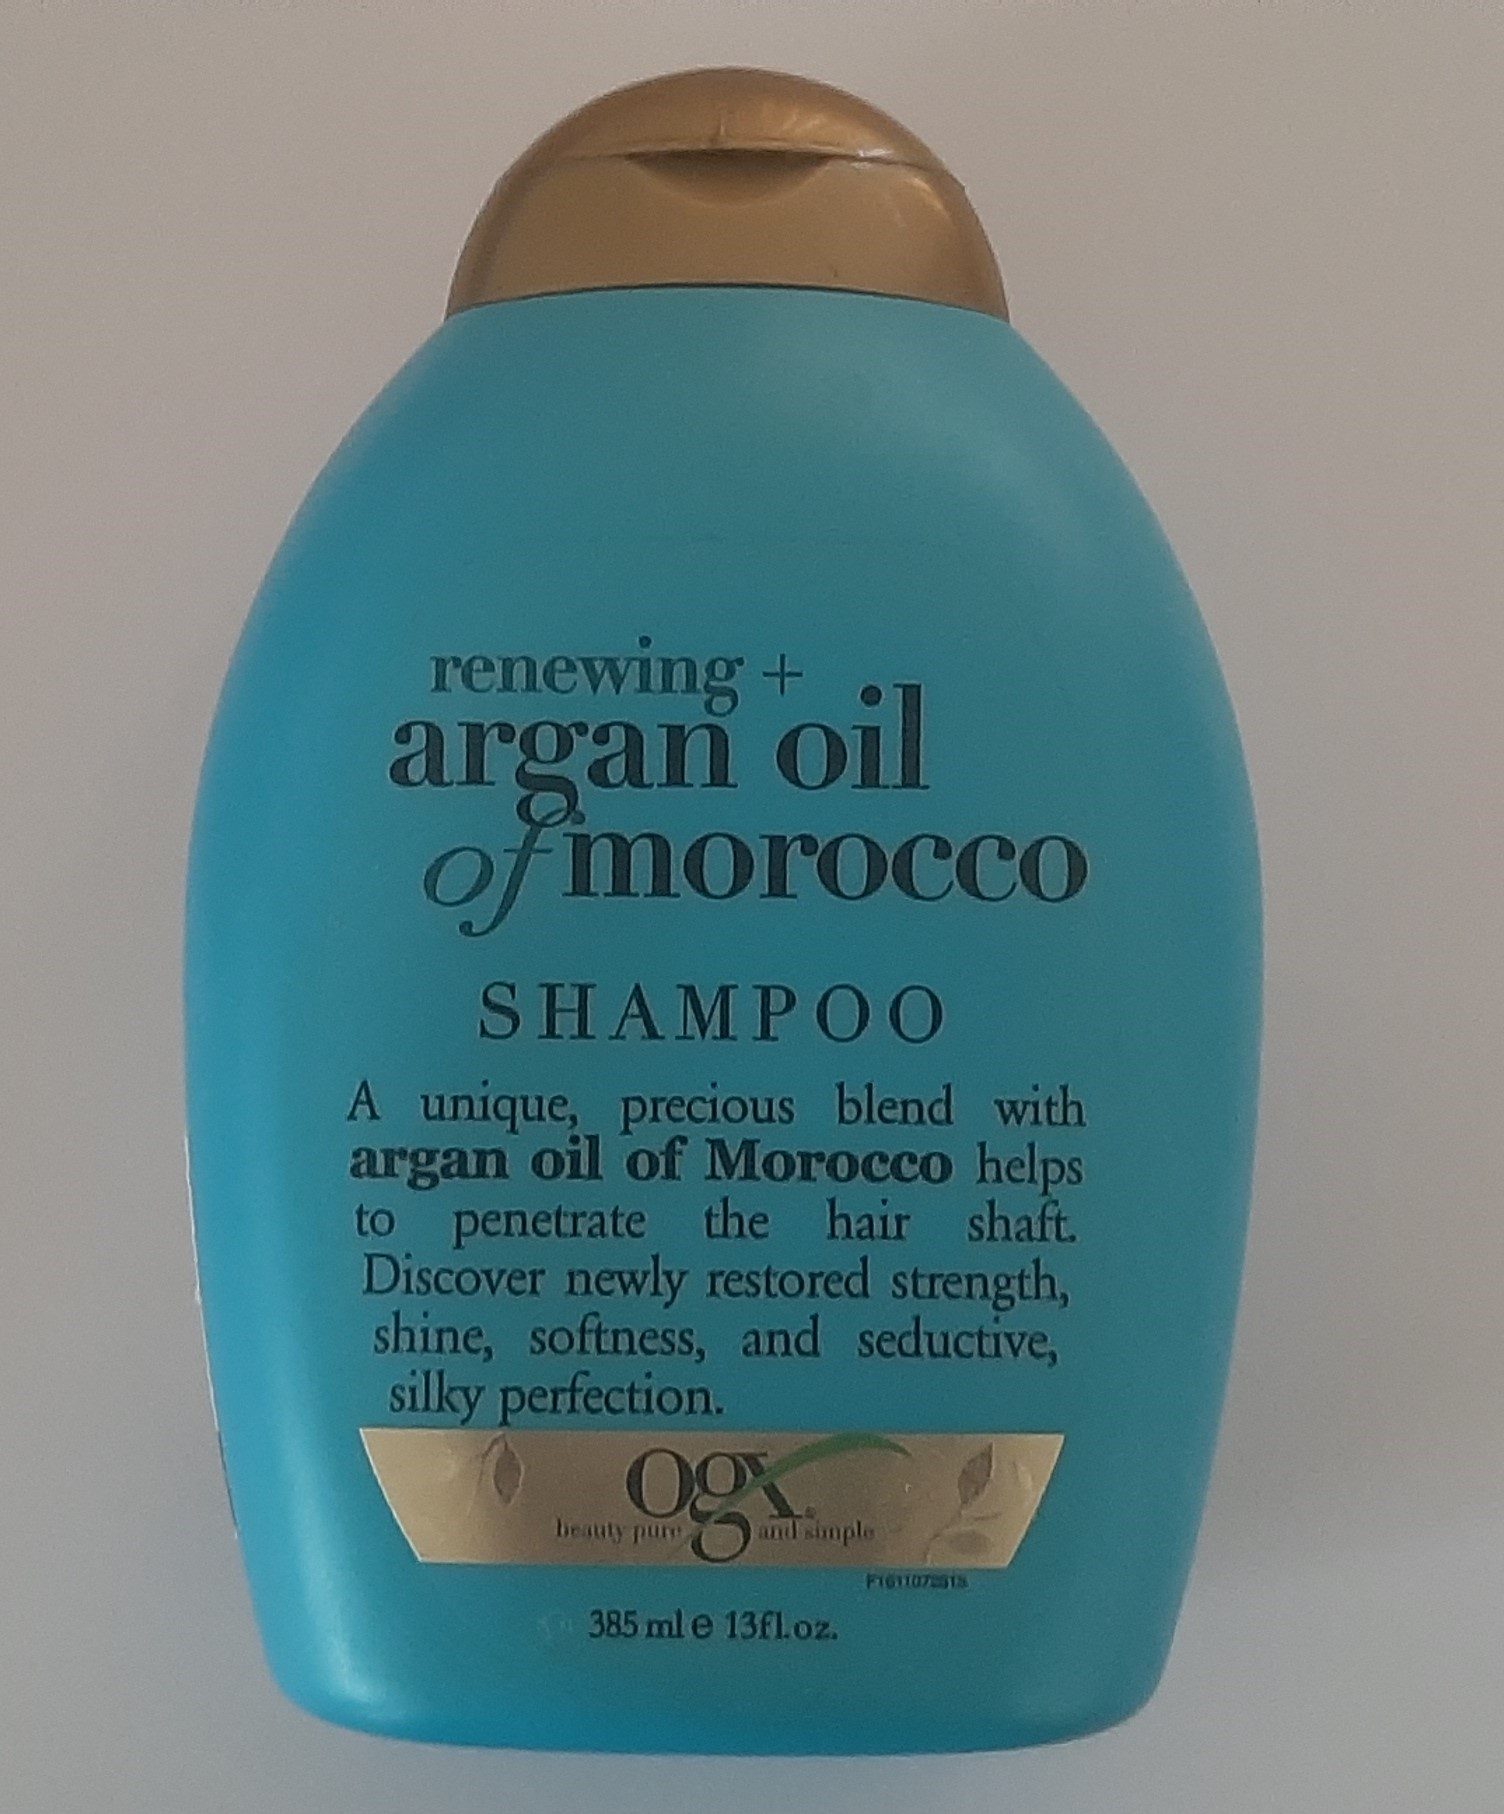 OGX Moroccan Argan Oil Shampoo pic 1-Cruelty free, No chemicals, Great fragrance, Value for money, Lathers pretty well, Leaves a shine in your hair-By exploexplo20